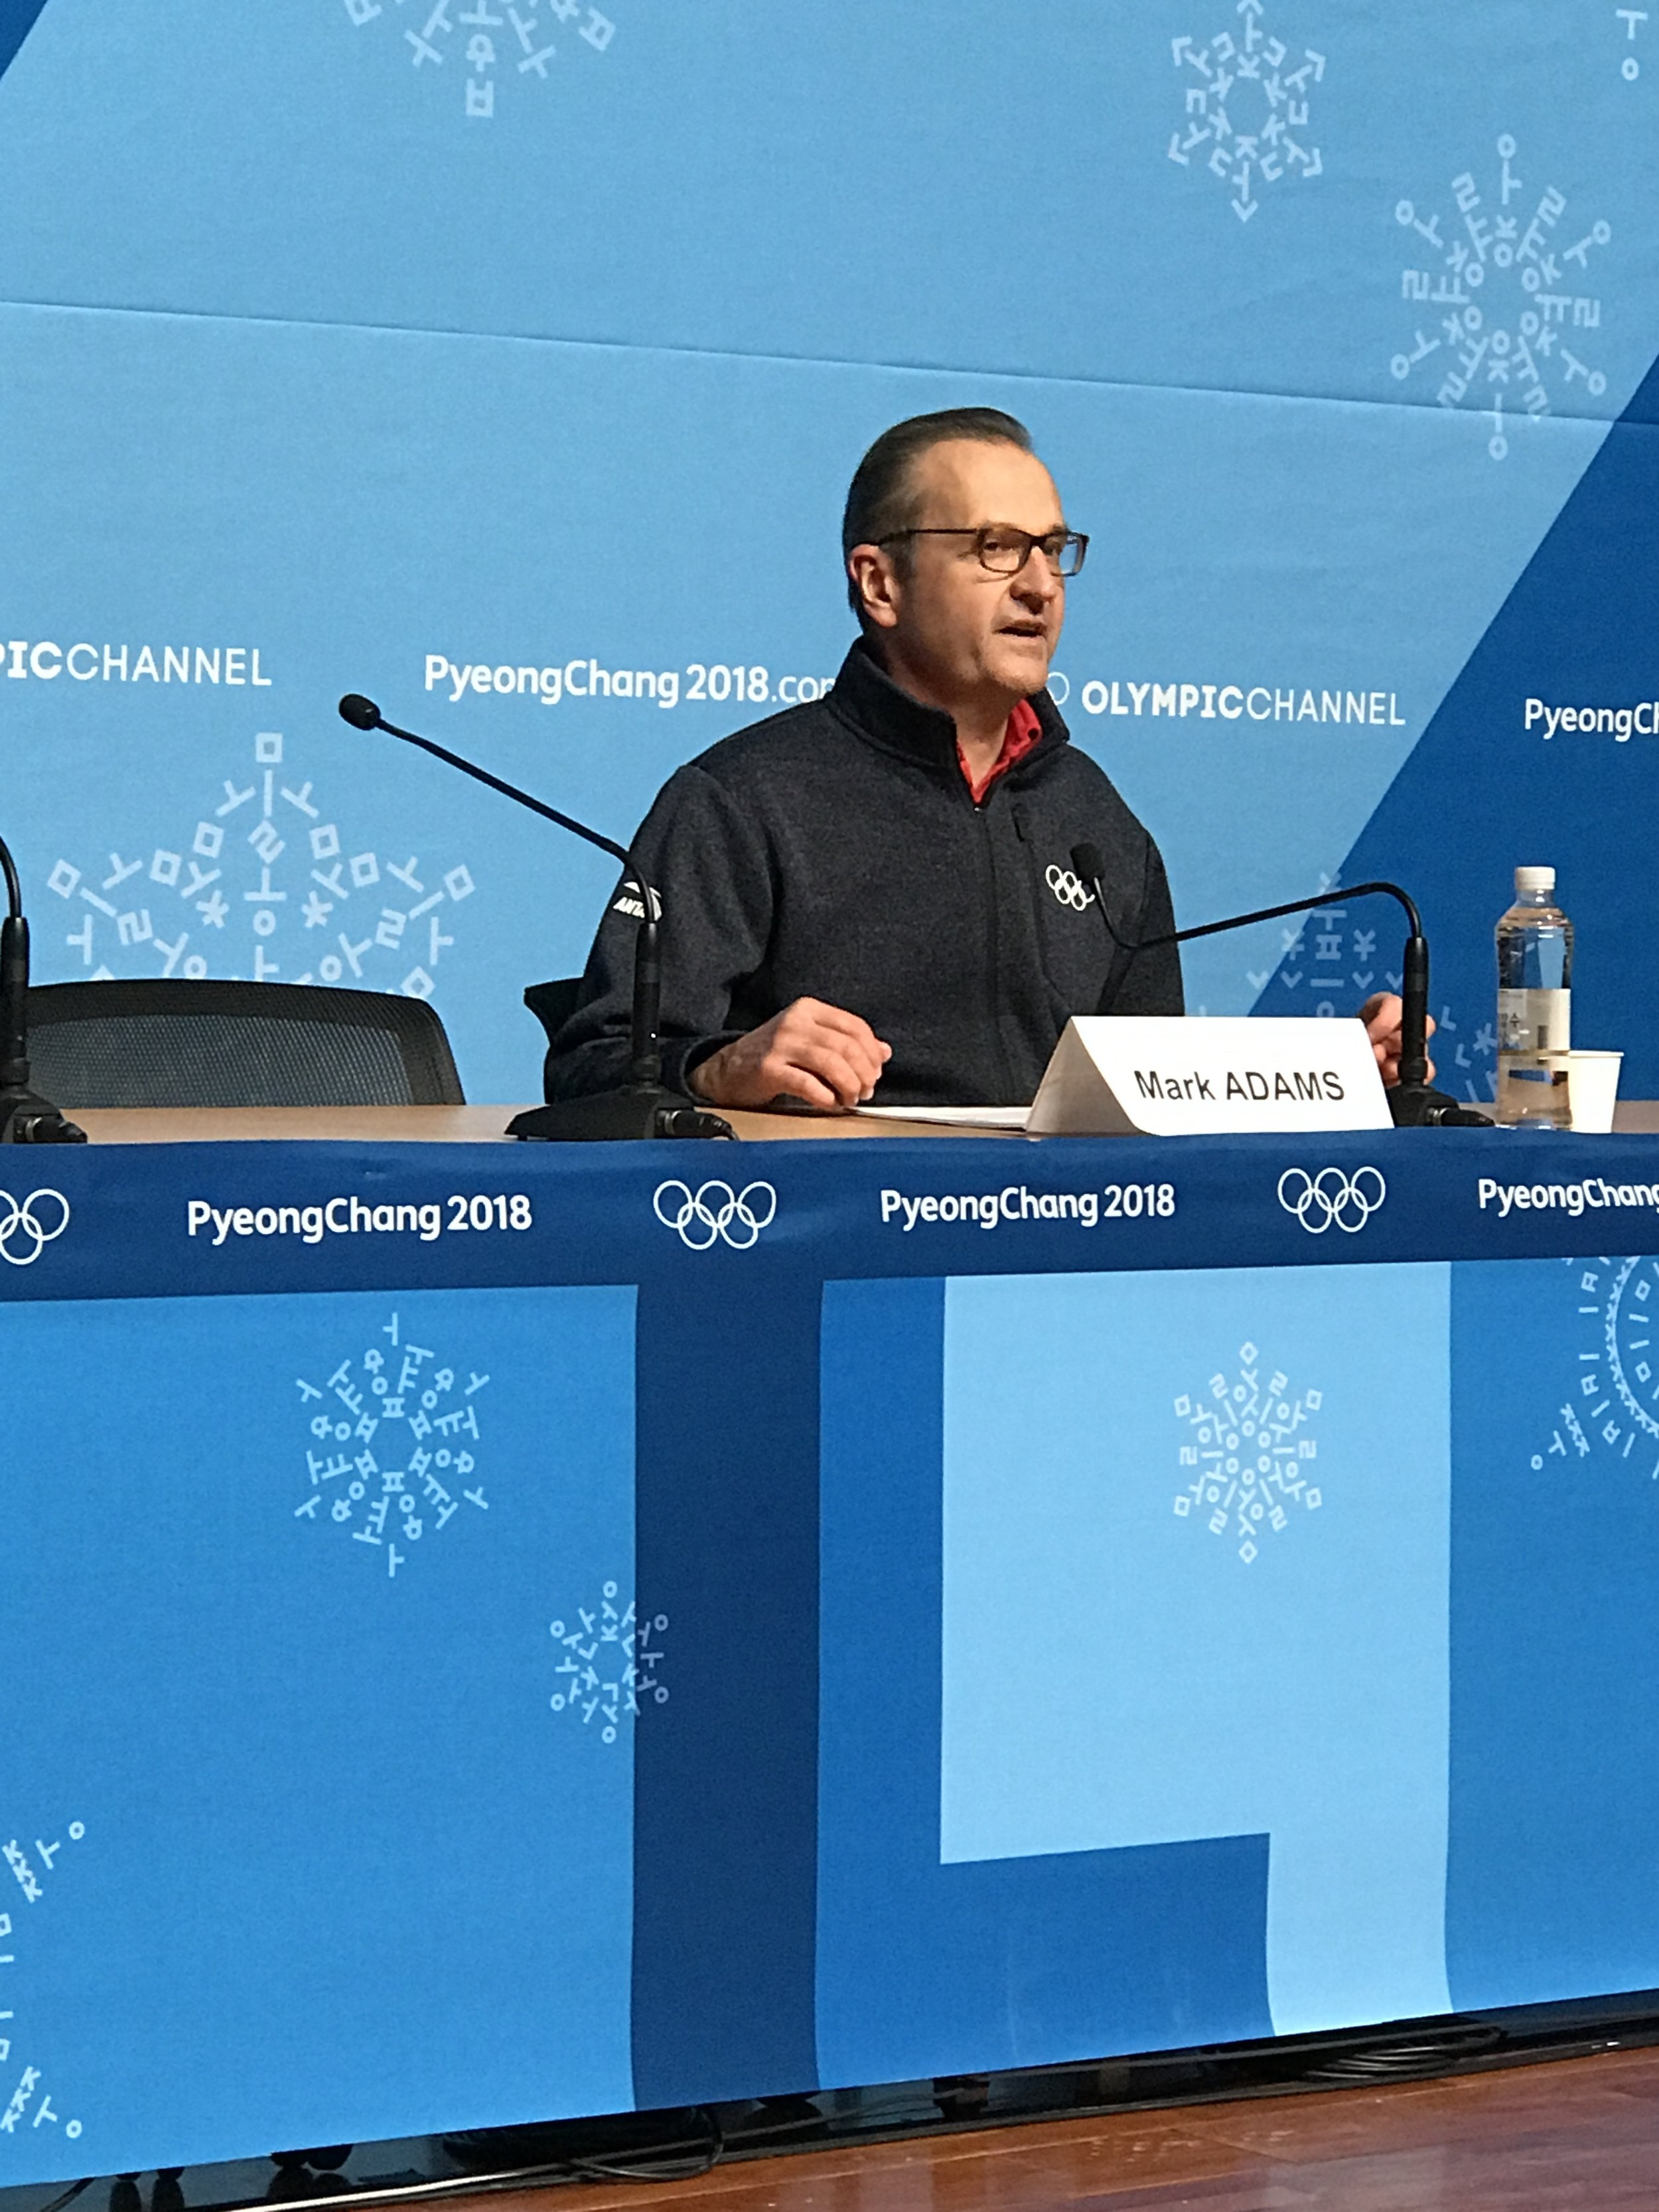 Spokesman Mark Adams reading the IOC statement Thursday evening at the PC 2018 Main Press Center after the Court for Arbitration for Sport announcement